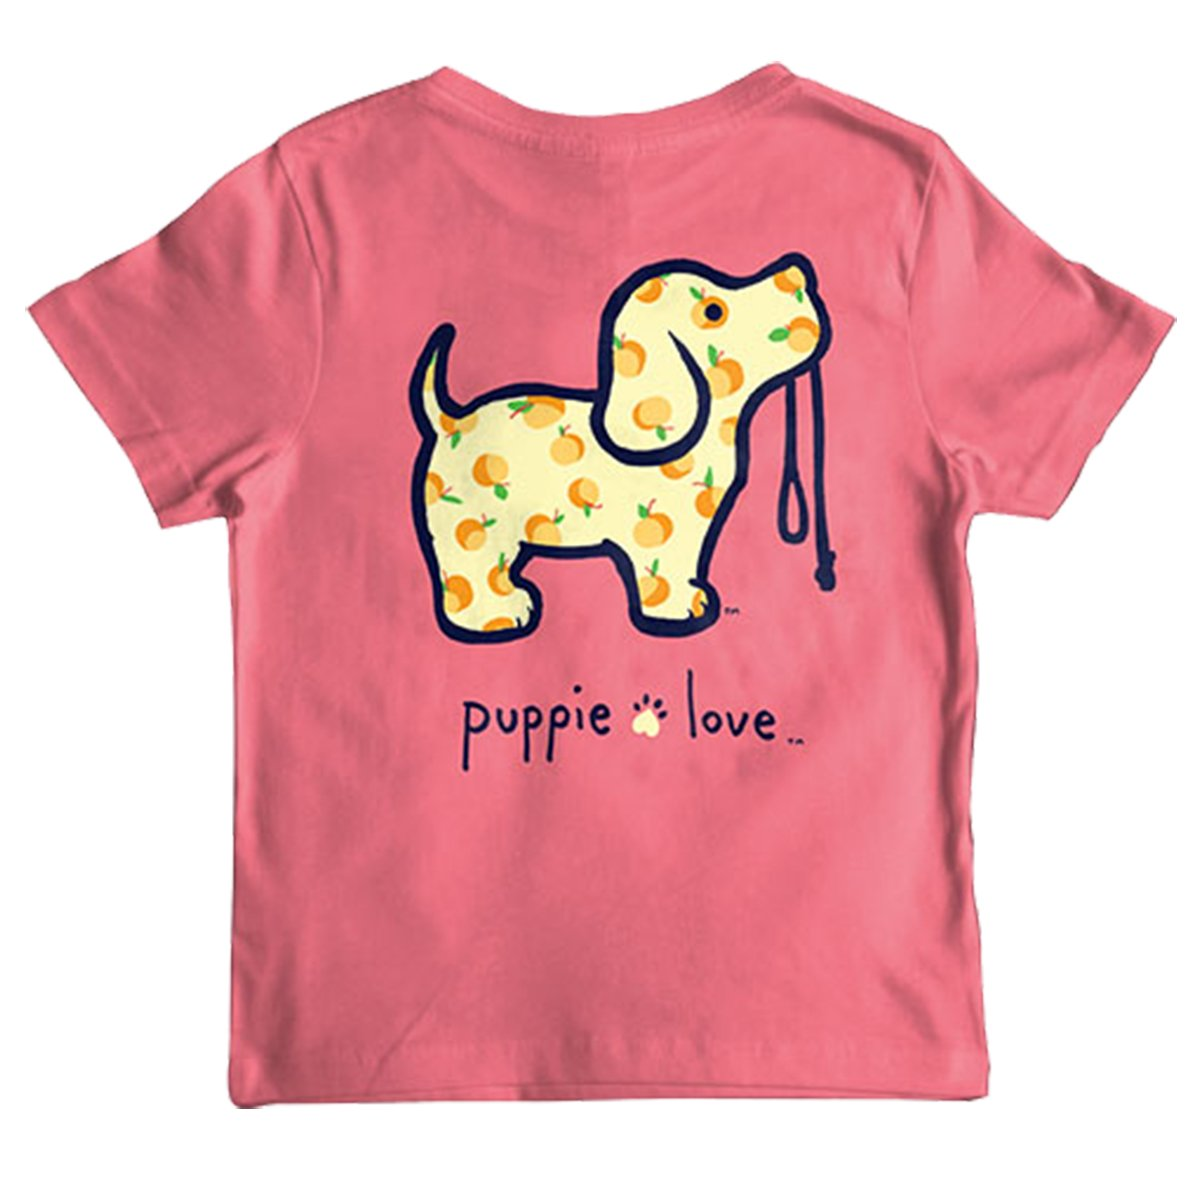 Puppie Love Youth Georgia Peach Pup Help Rescue Dogs T-Shirt-Youth Large